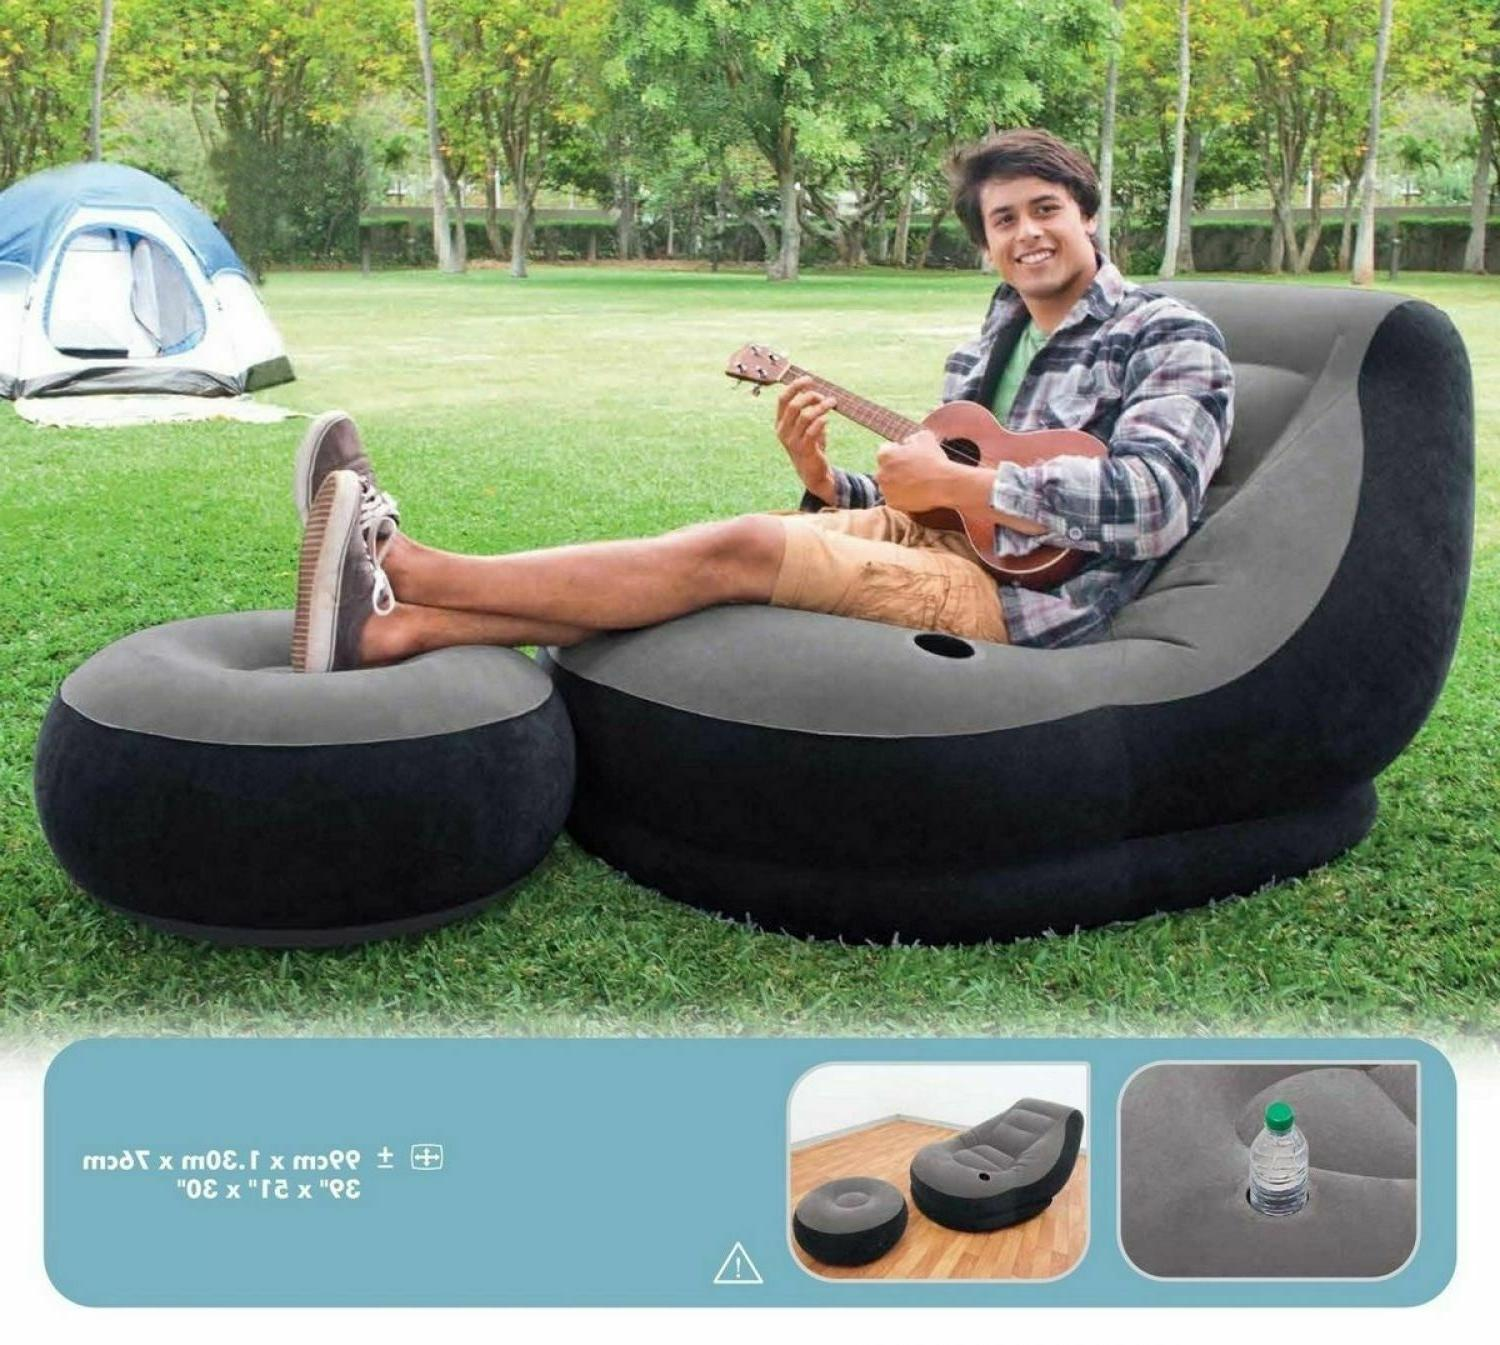 Large Video Gaming Chair Inflatable Intex Ultra Lounge Ottom